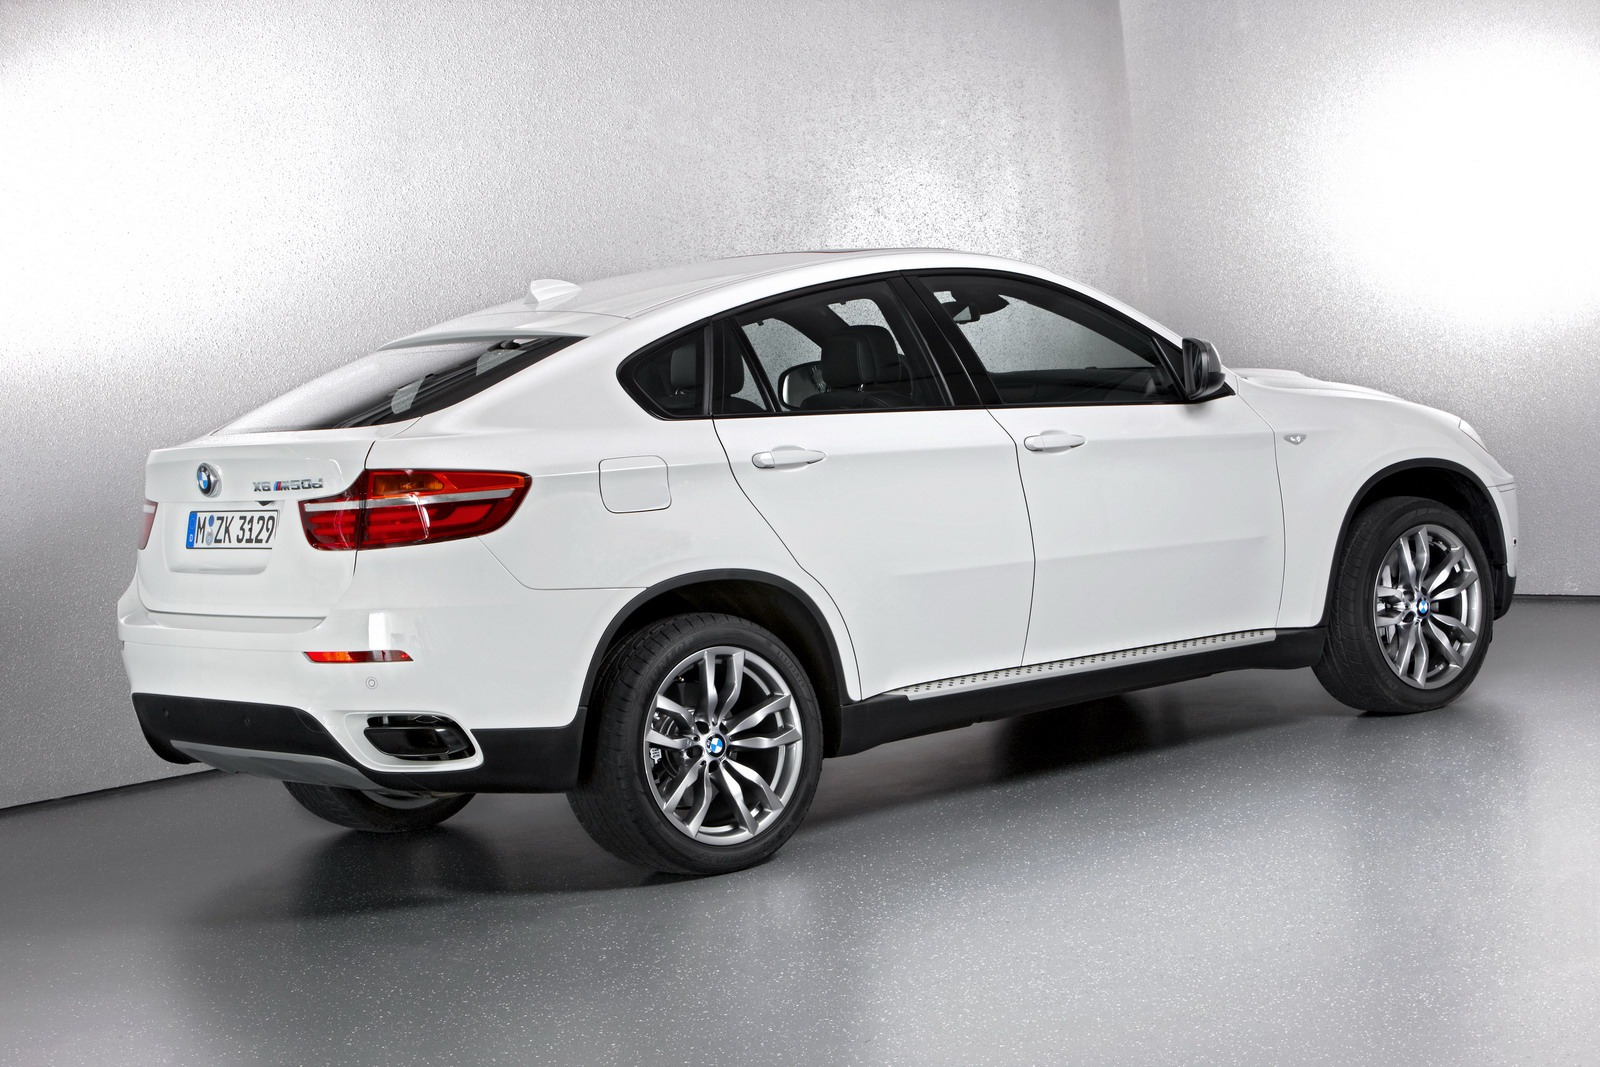 2013 BMW X6 - Information and photos - ZombieDrive